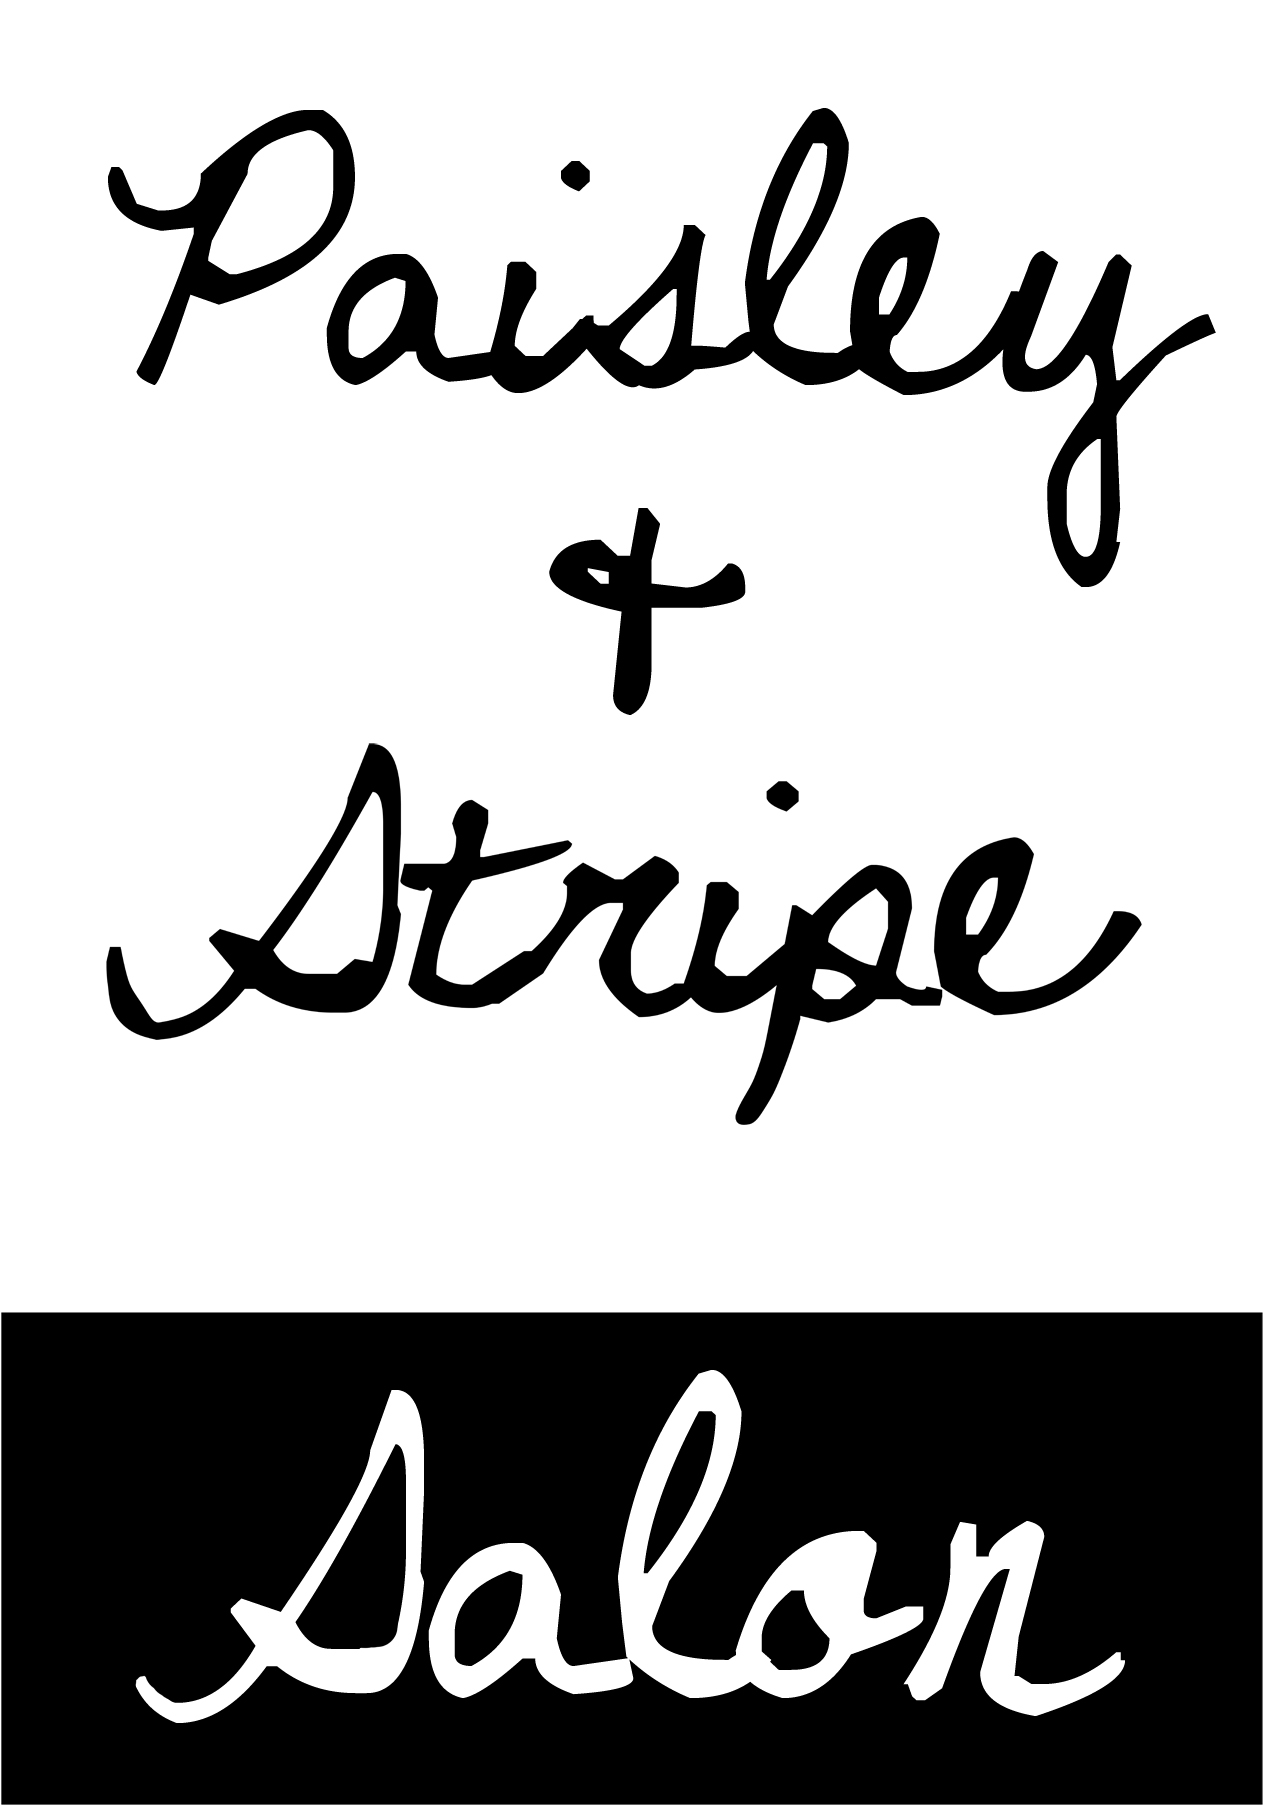 Paisley and Stripe salon